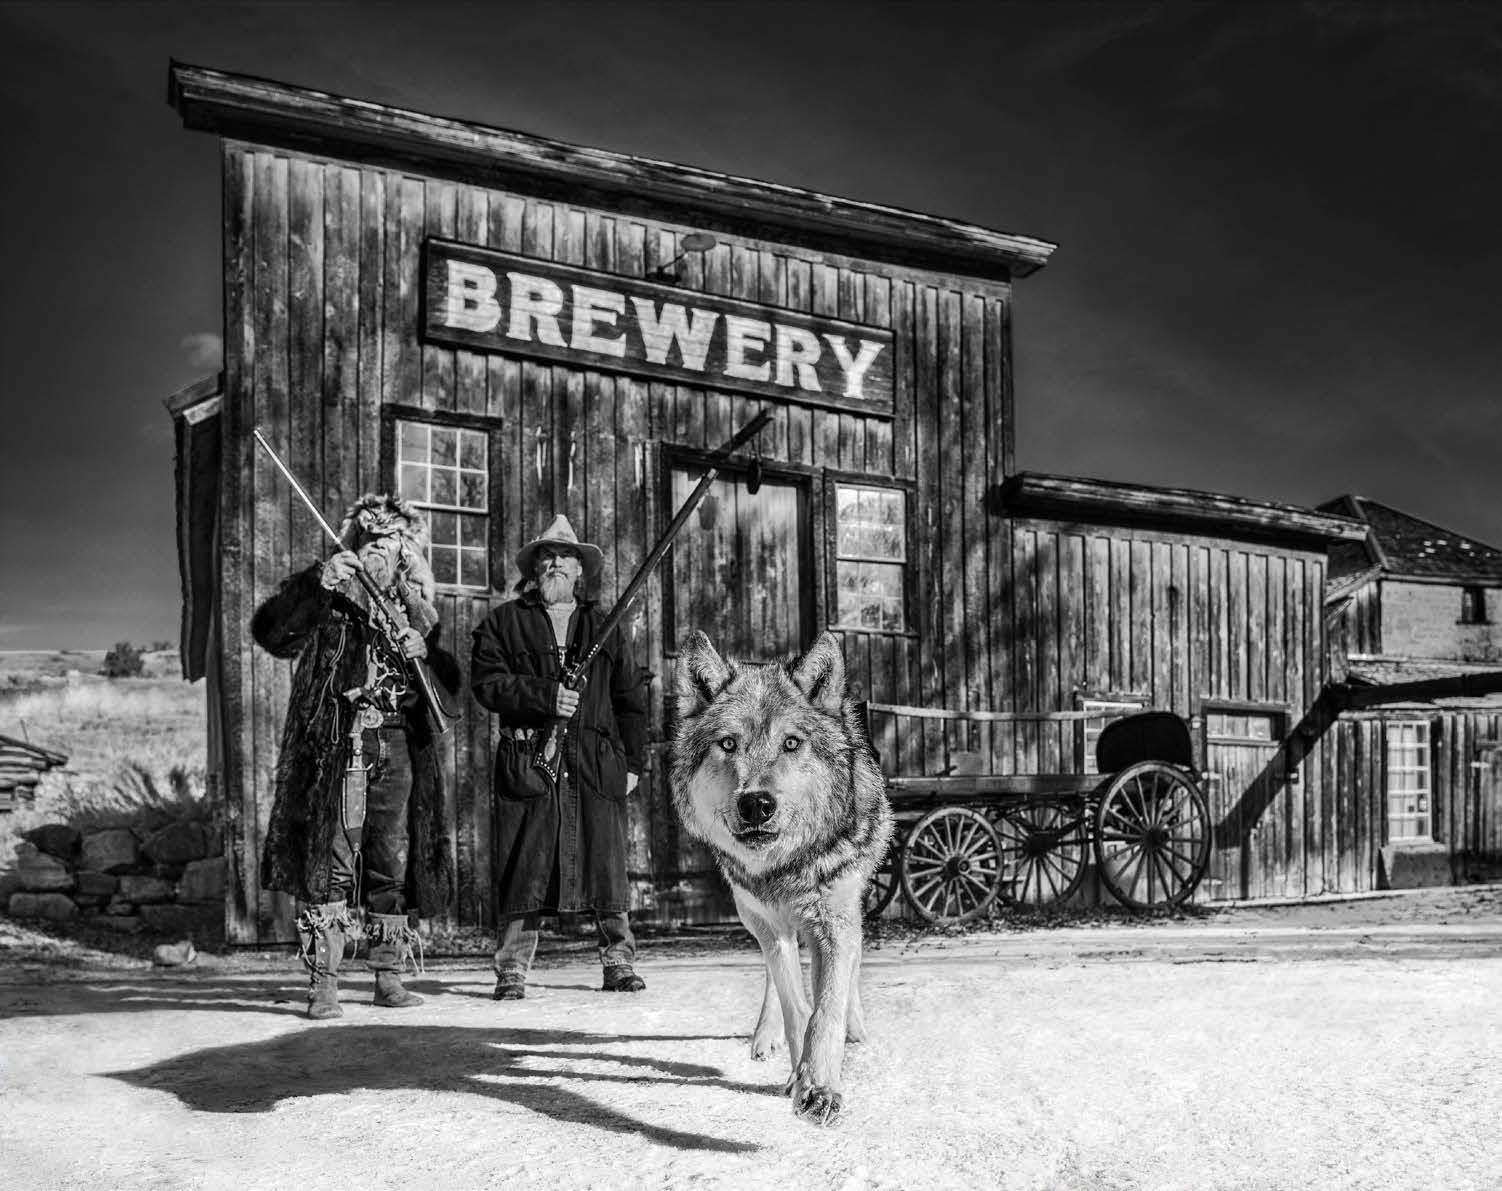 David Yarrow Something's Brewing Archival Pigment Print